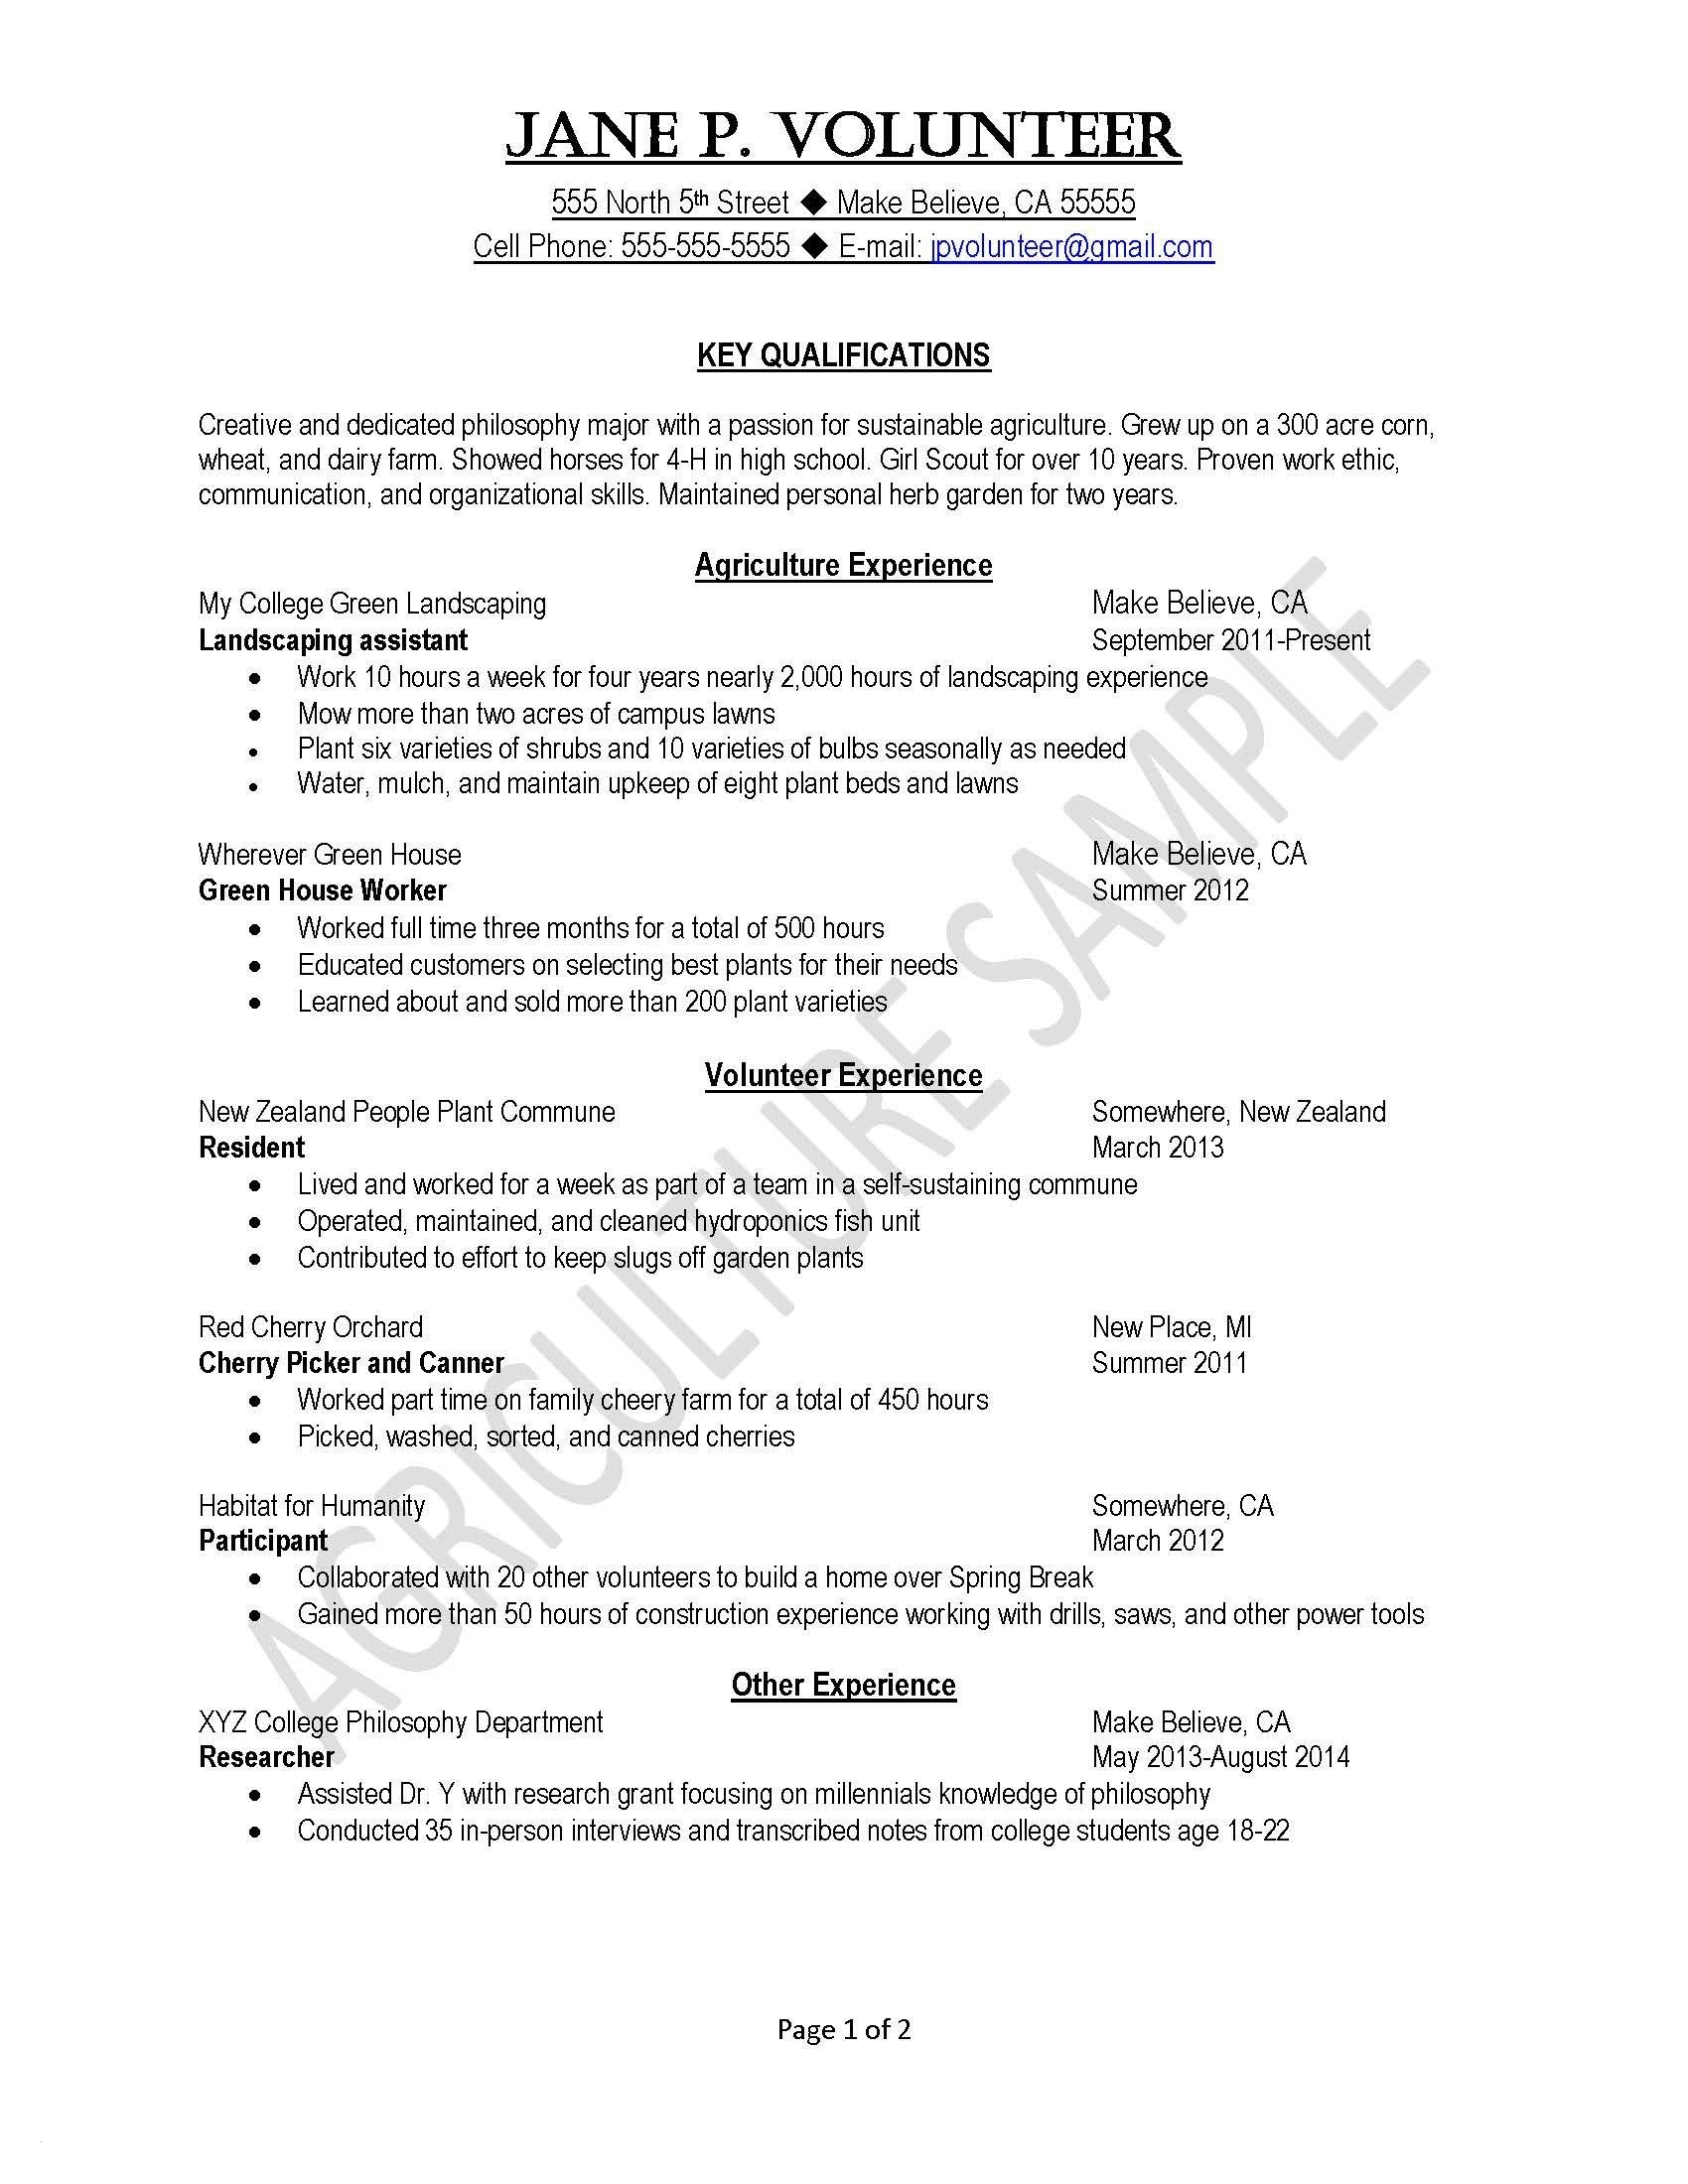 landscaping skills for resume example-federal government resume templates american style unnamed fi resume 16-o